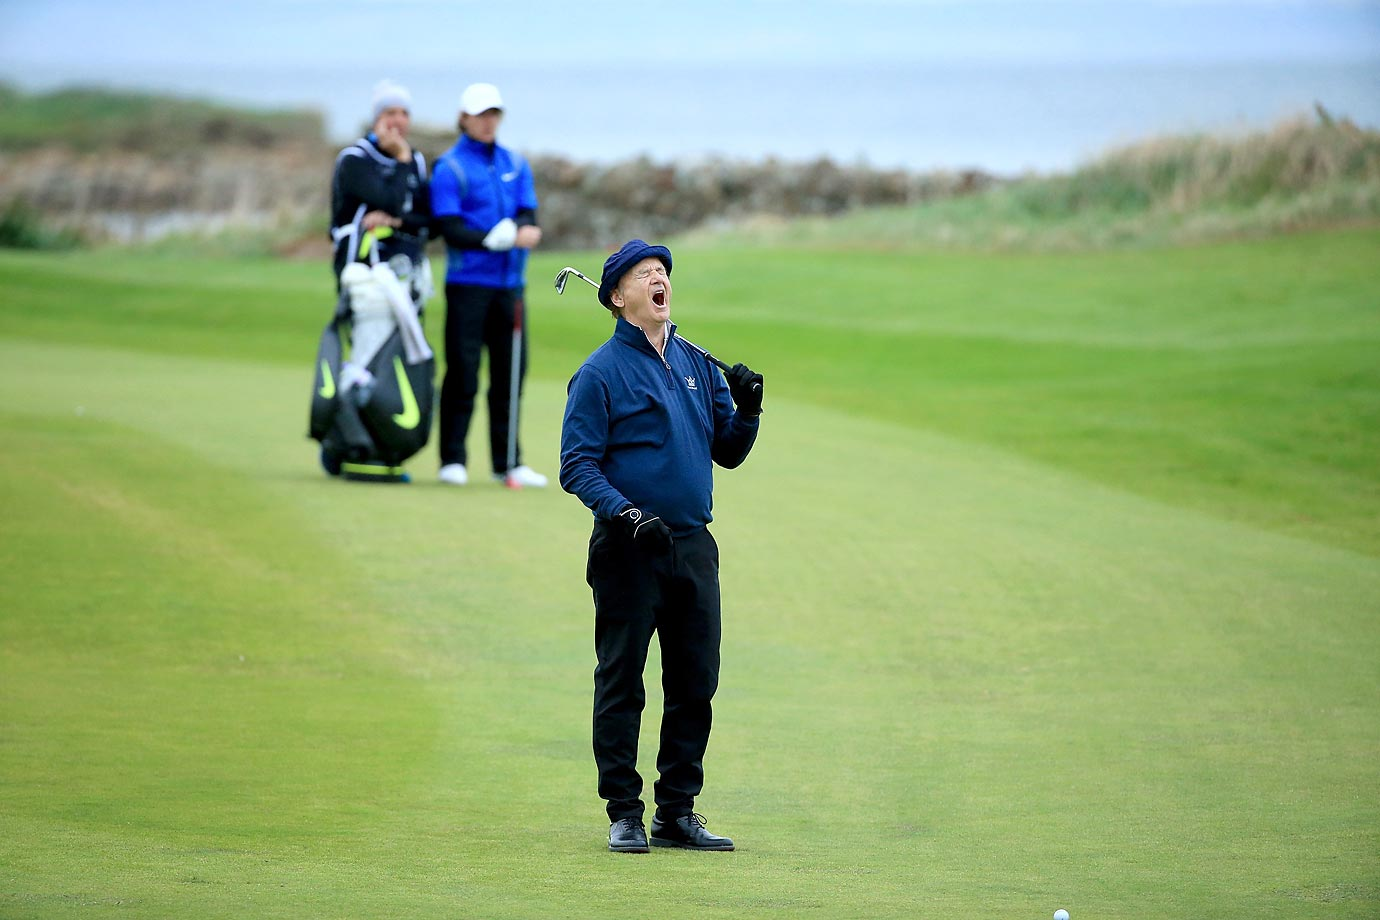 Bill Murray on the 12th fairway during the second round of the 2014 Alfred Dunhill Links Championship.